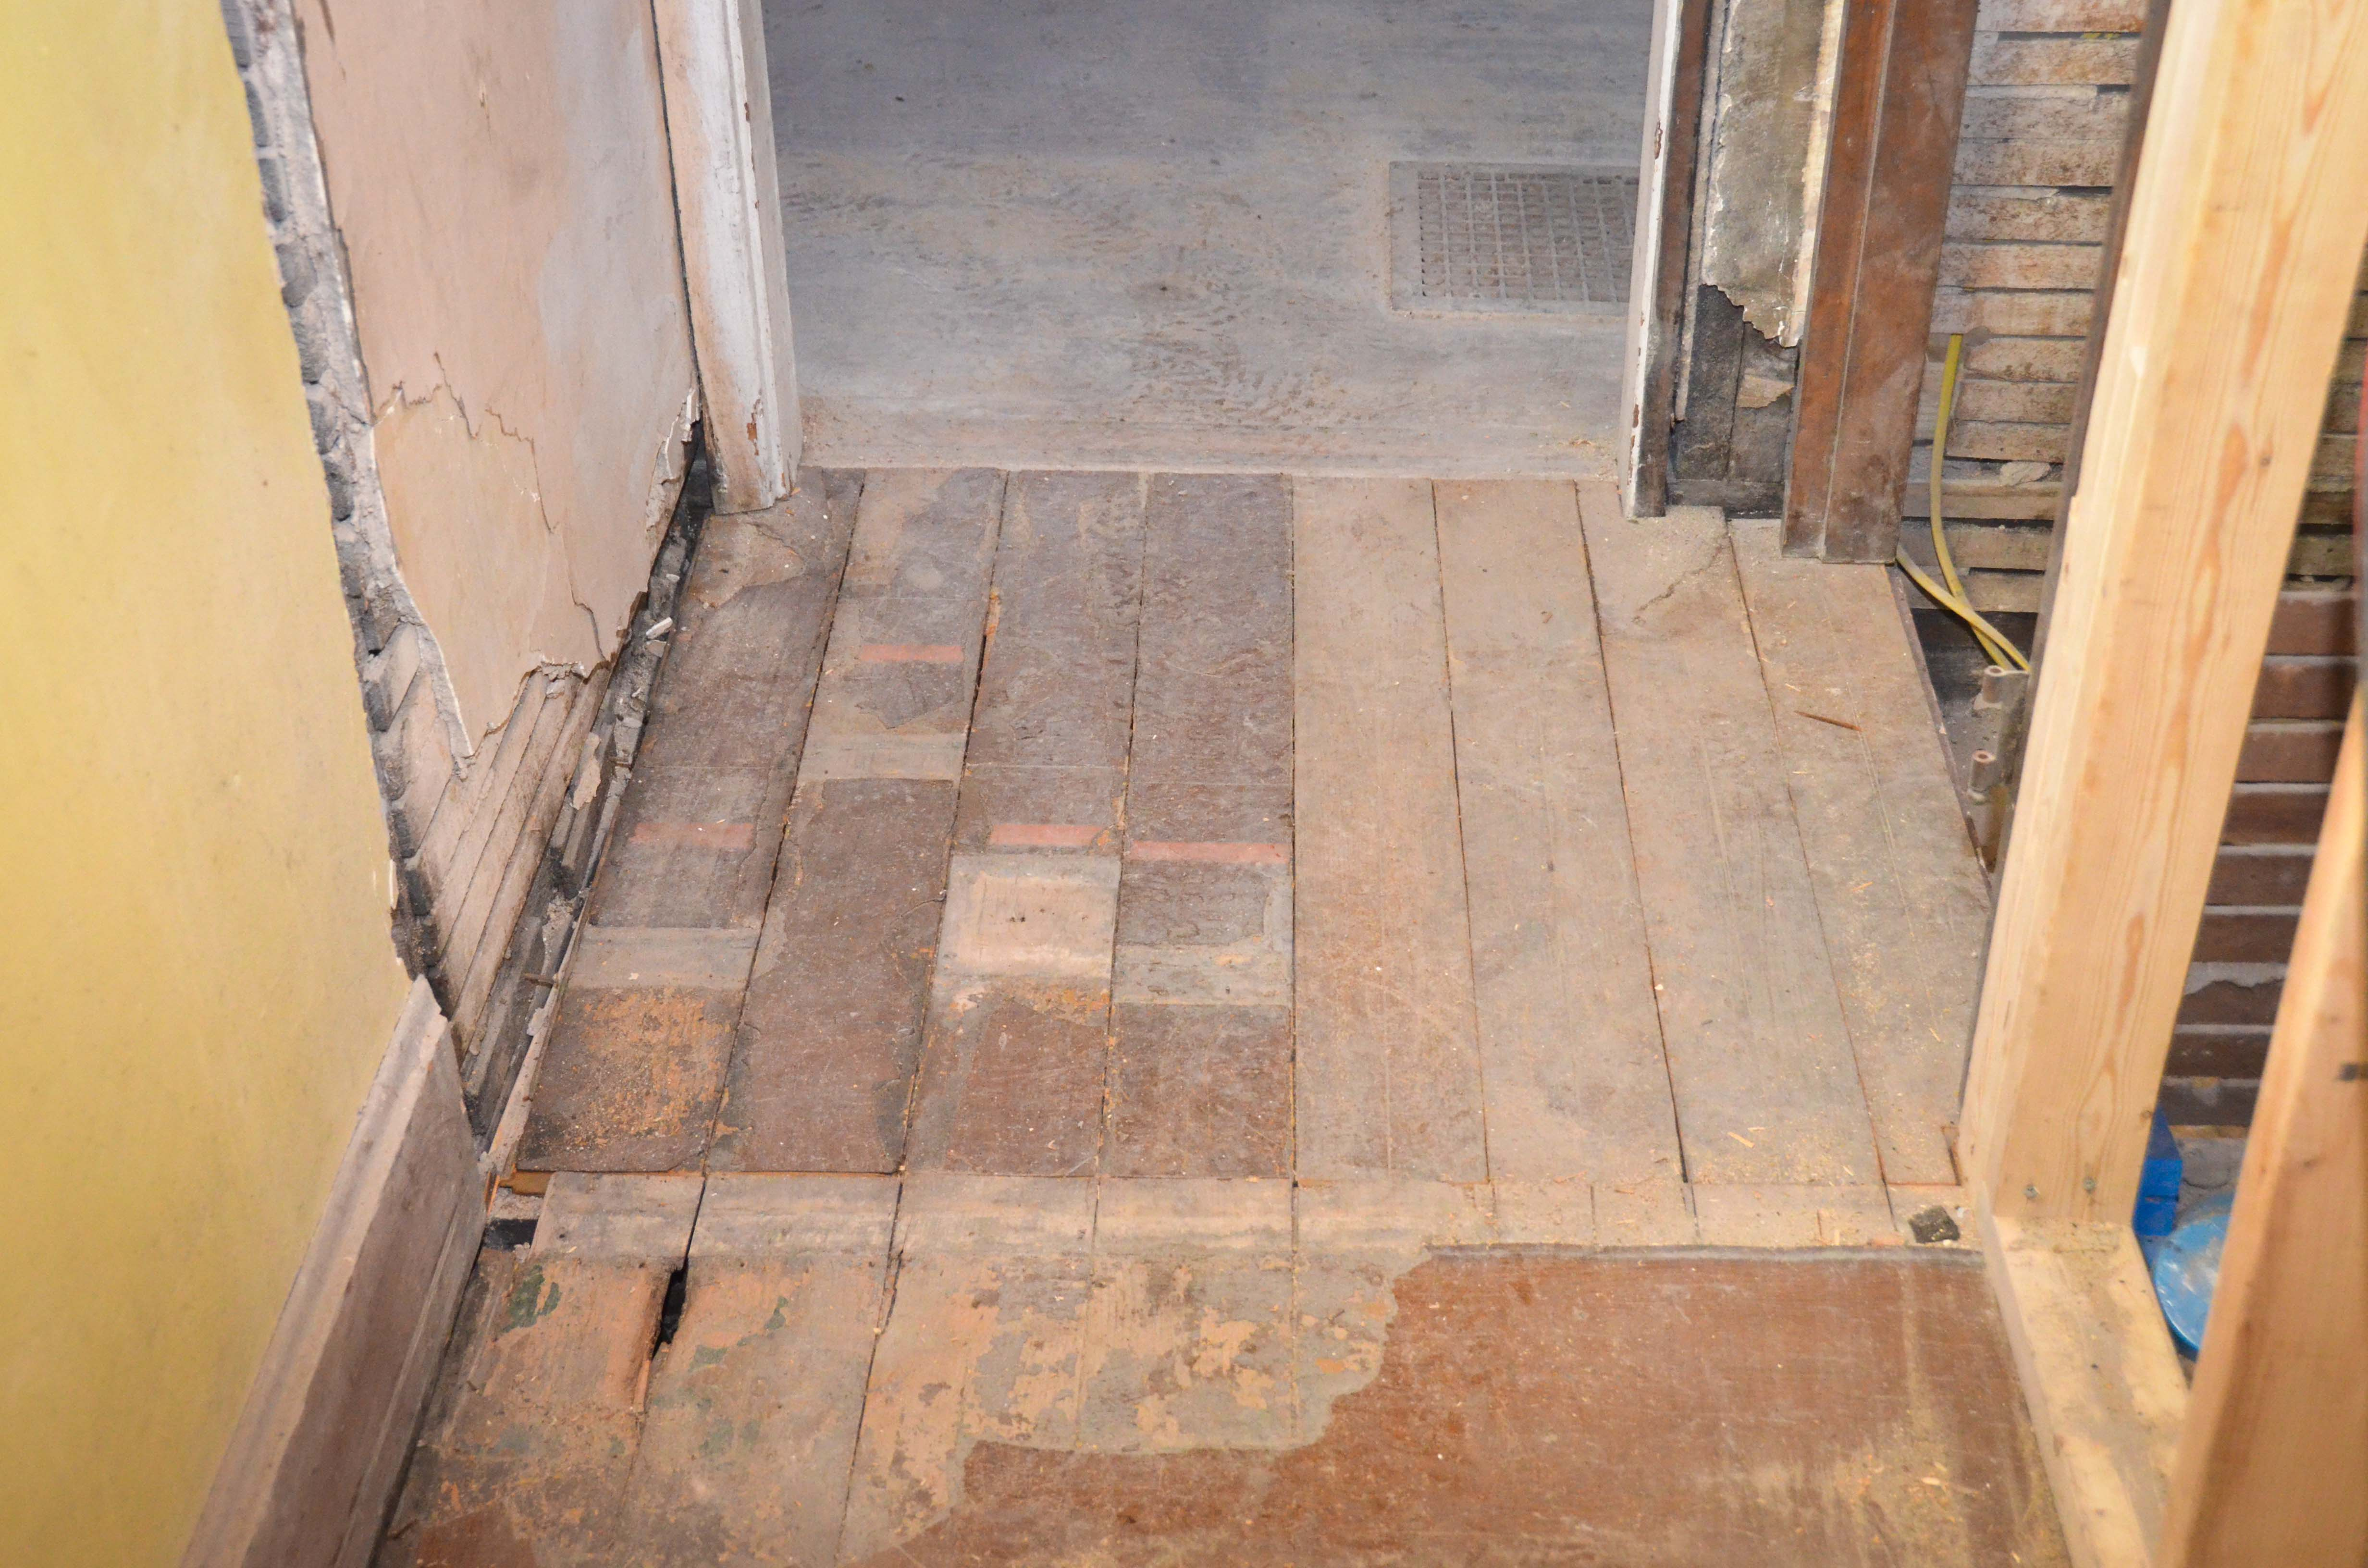 Bathroom floor boards - New Landing At The Top Of The Basement Stairs Including New Floorboards Ripped From Bathroom